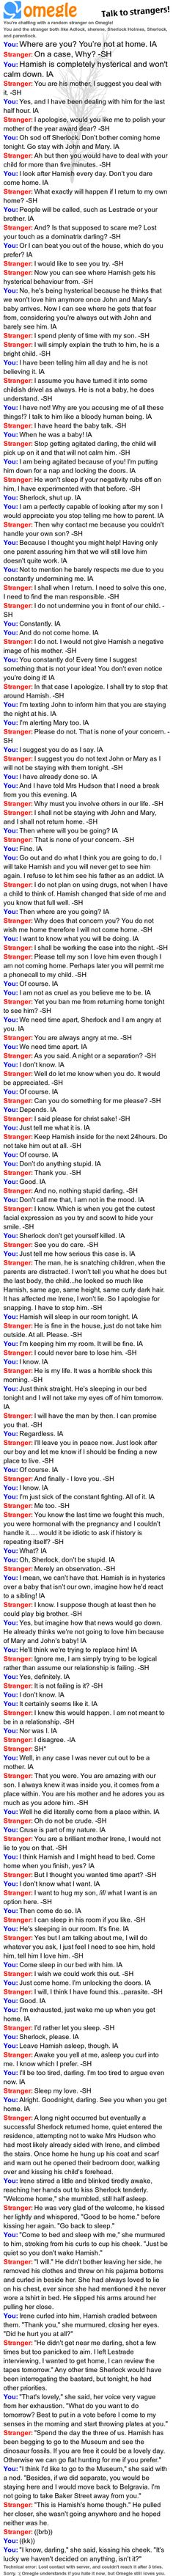 Omegle chat log  OHMYGOD READ THIS SHIT